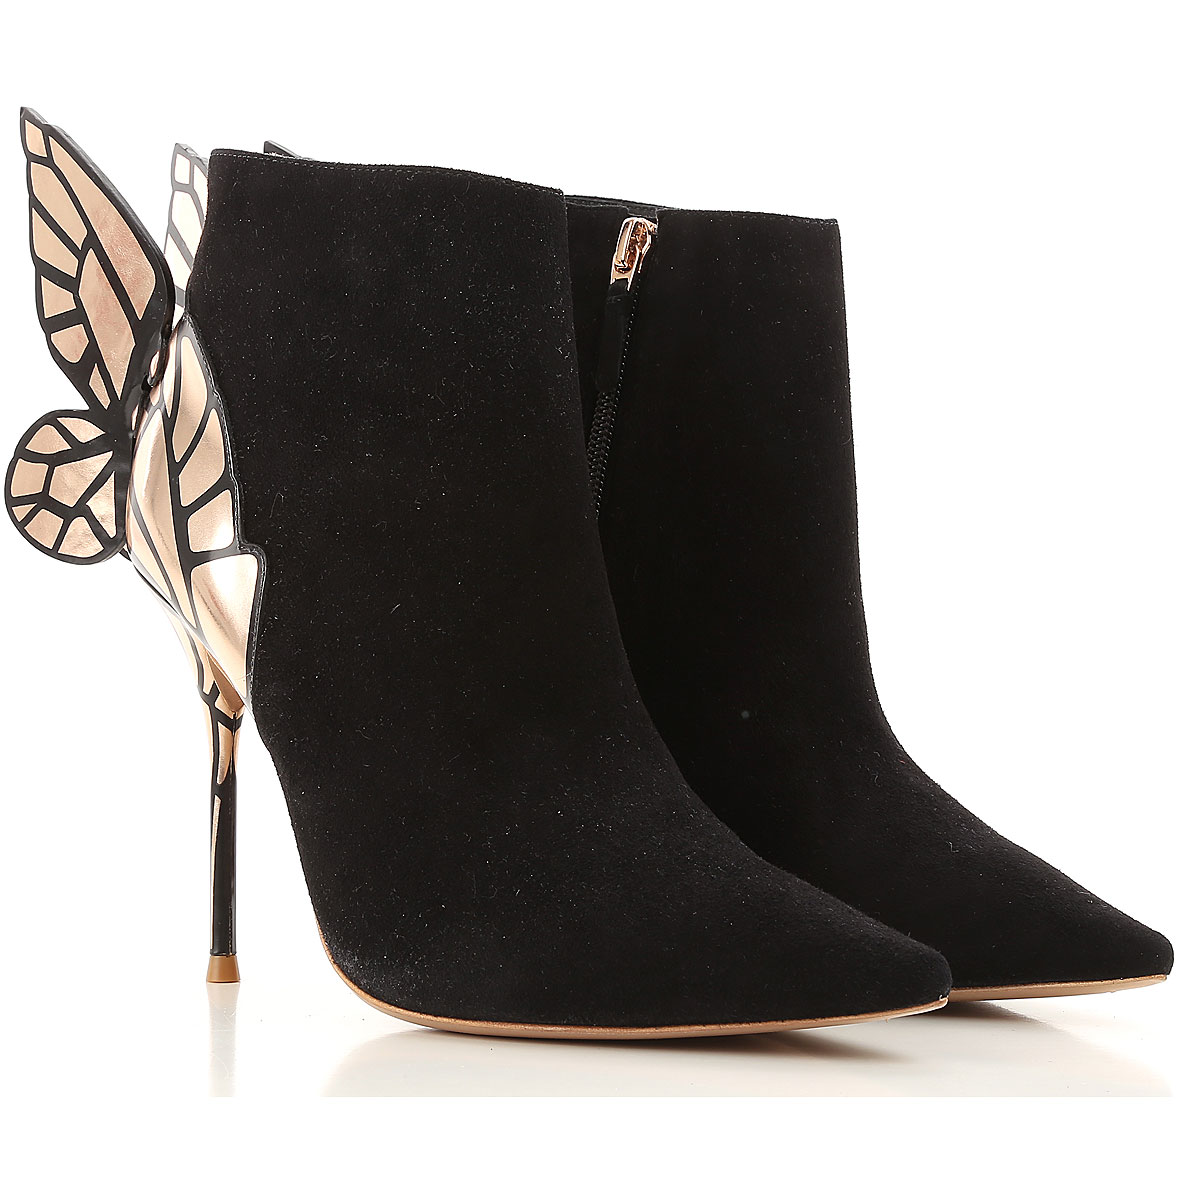 Image of Sophia Webster Boots for Women, Booties On Sale in Outlet, Black, Suede leather, 2017, 5 6